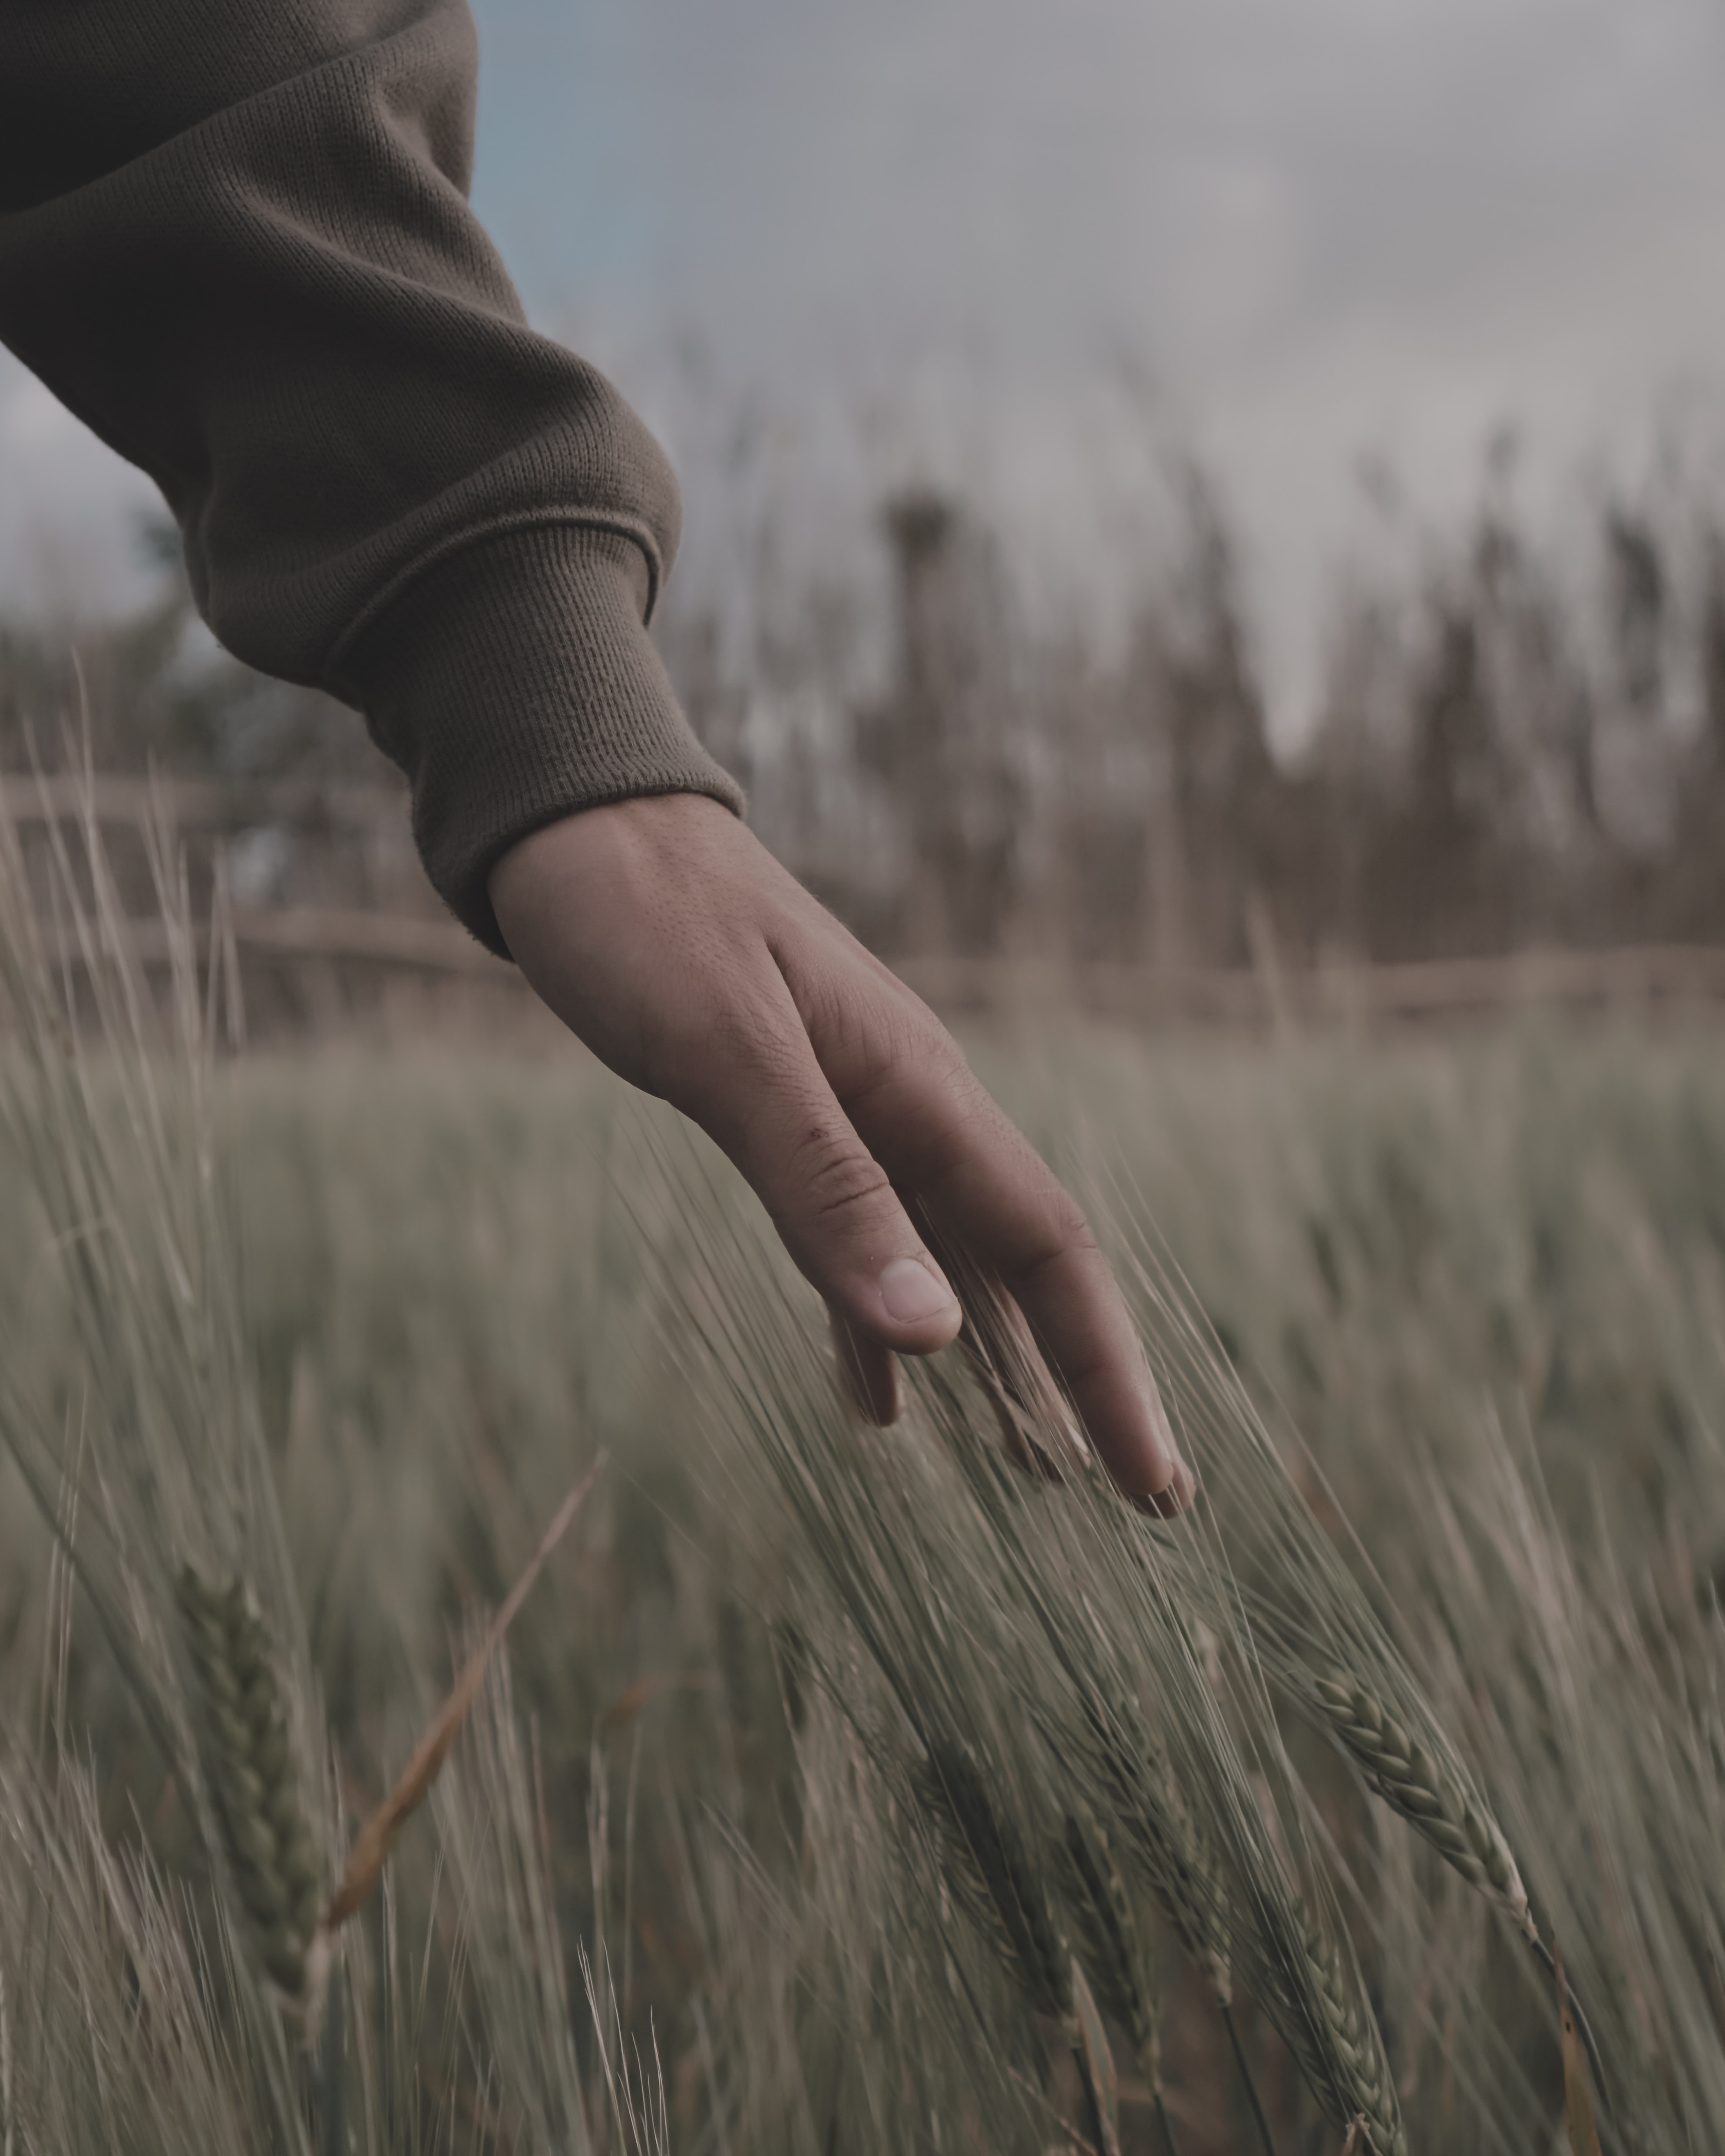 shallow focus photography of person's hand